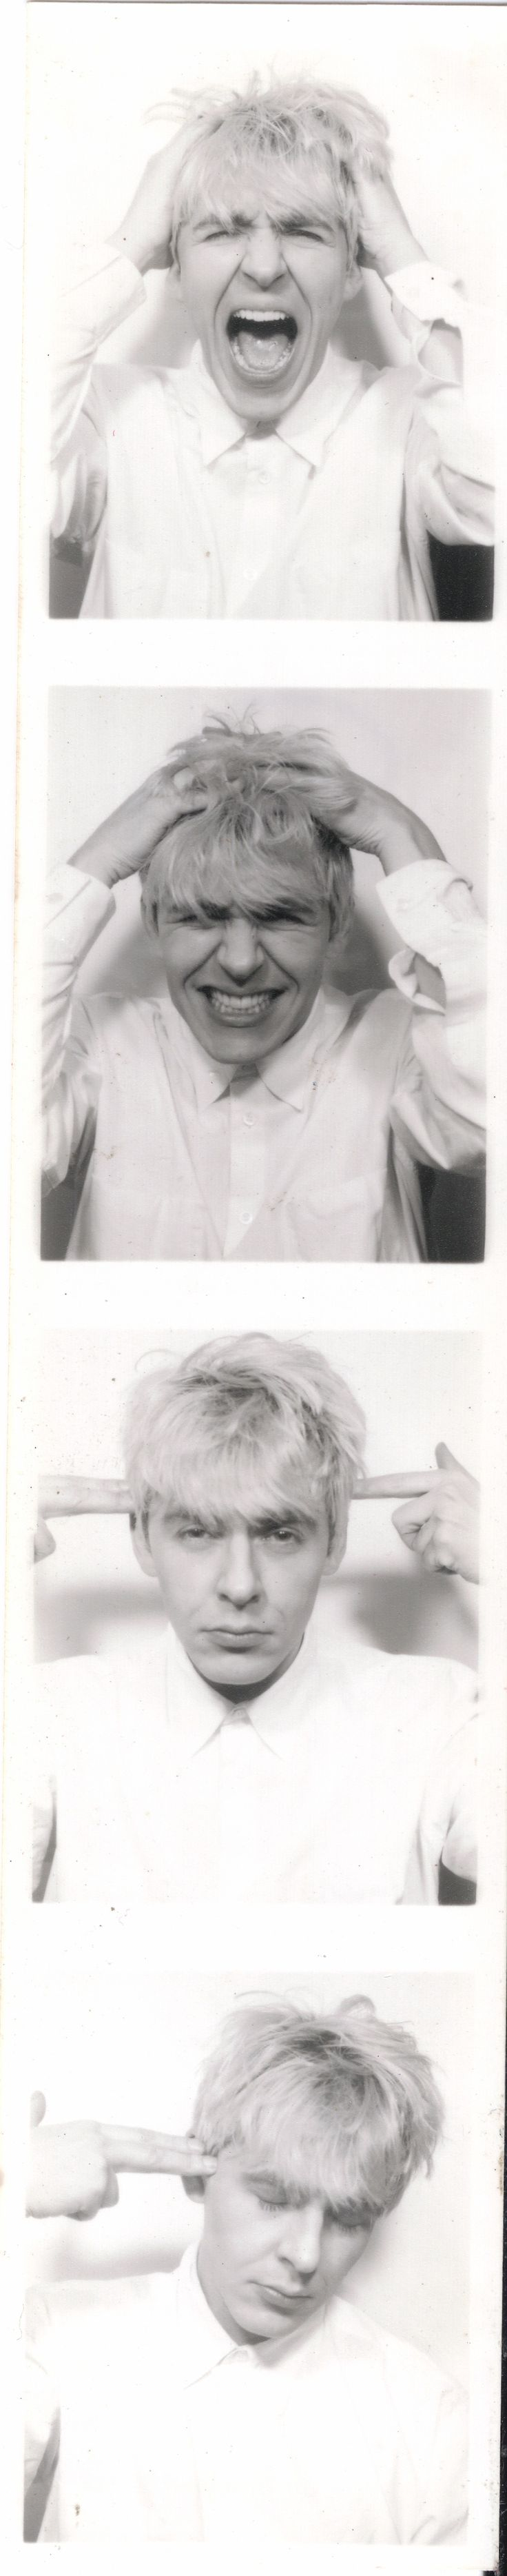 Duran Duran (the Wedding Album) - photo-booth shots, released for 20th anniversary - Nick Rhodes